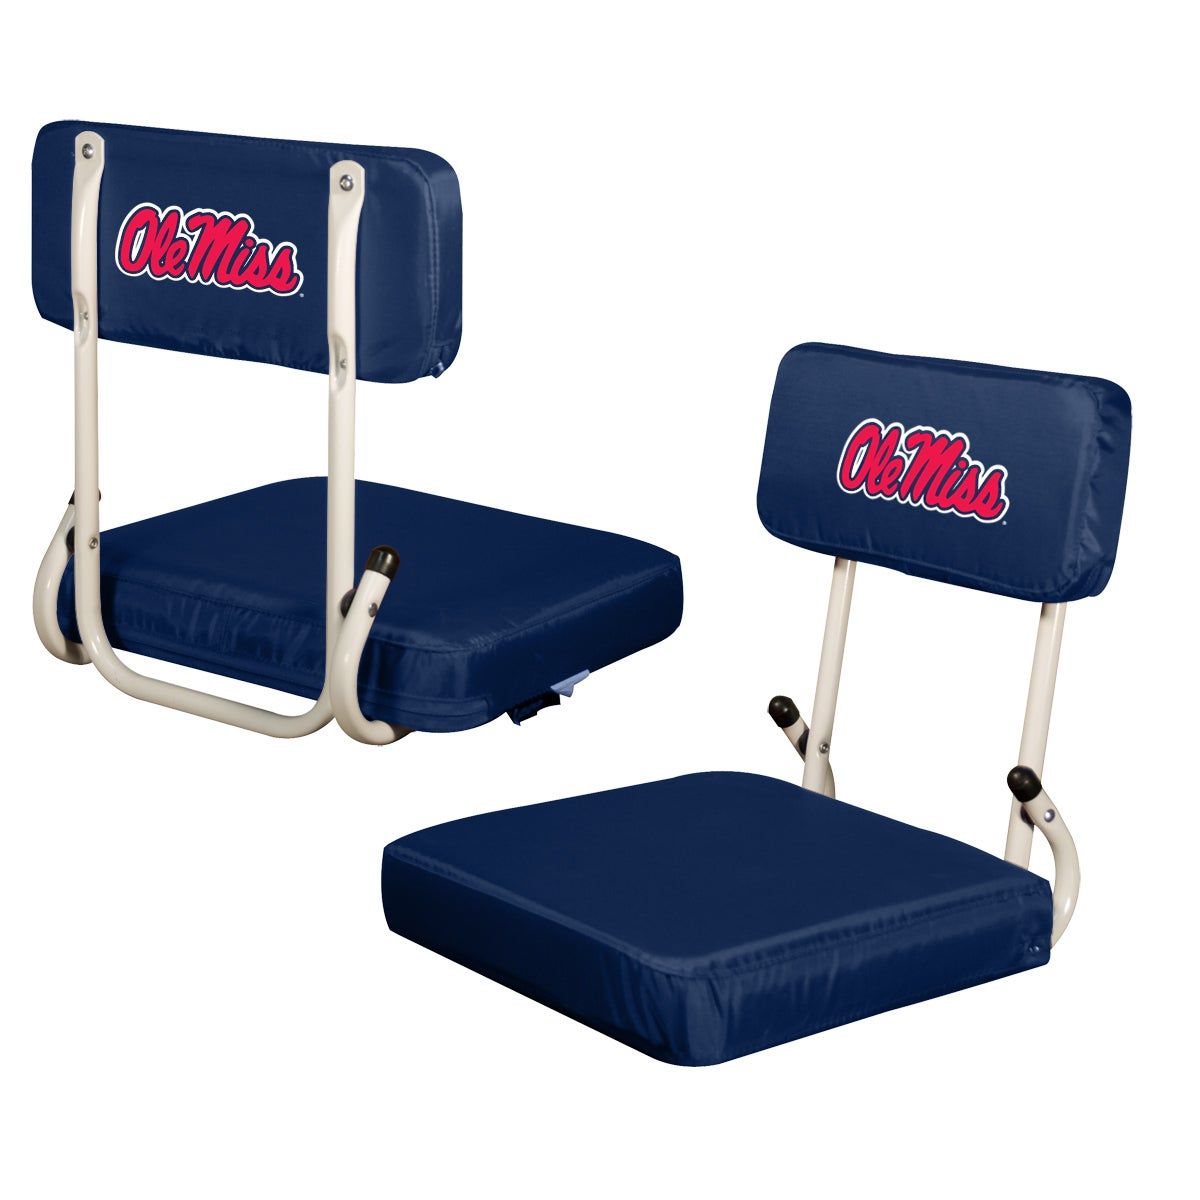 Overstock.com University of Mississippi 'Ole Miss' Hard Back Folding Stadium Seat at Sears.com